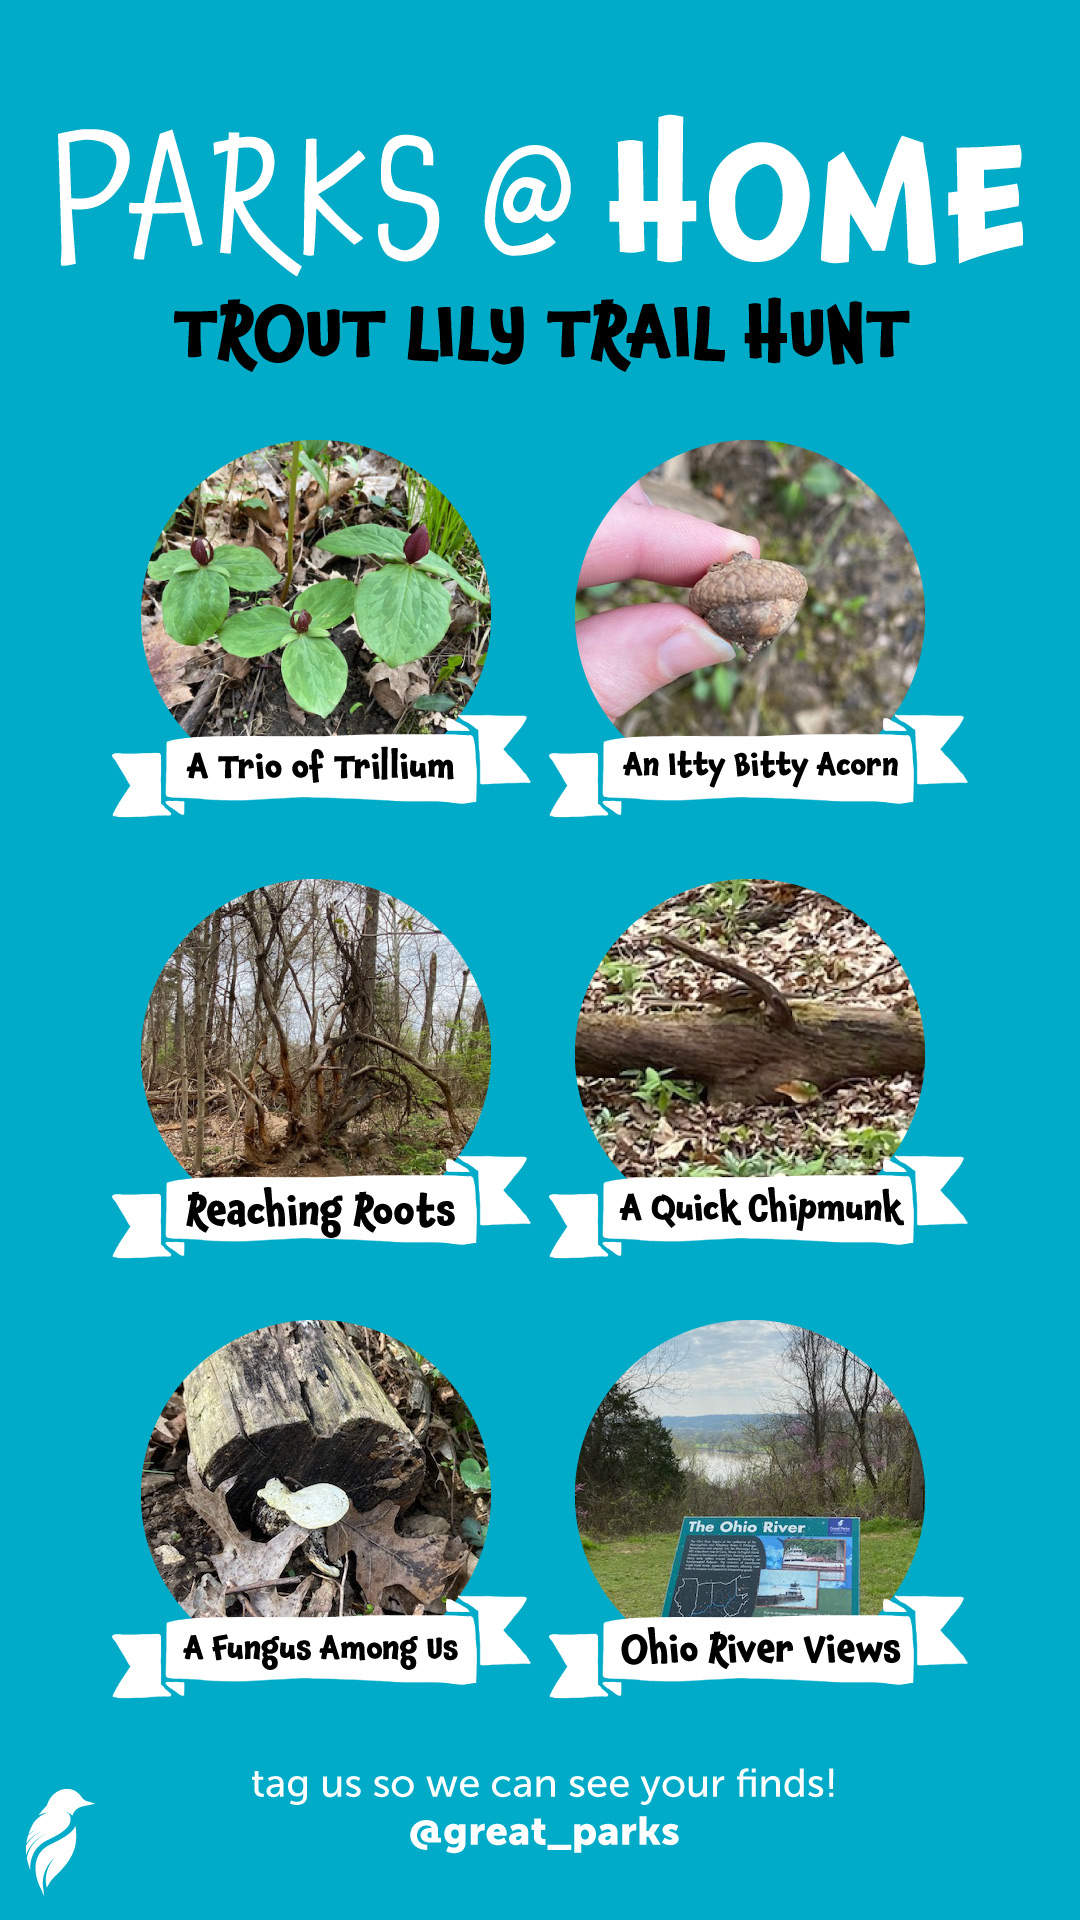 Trout Lily Trail Hunt